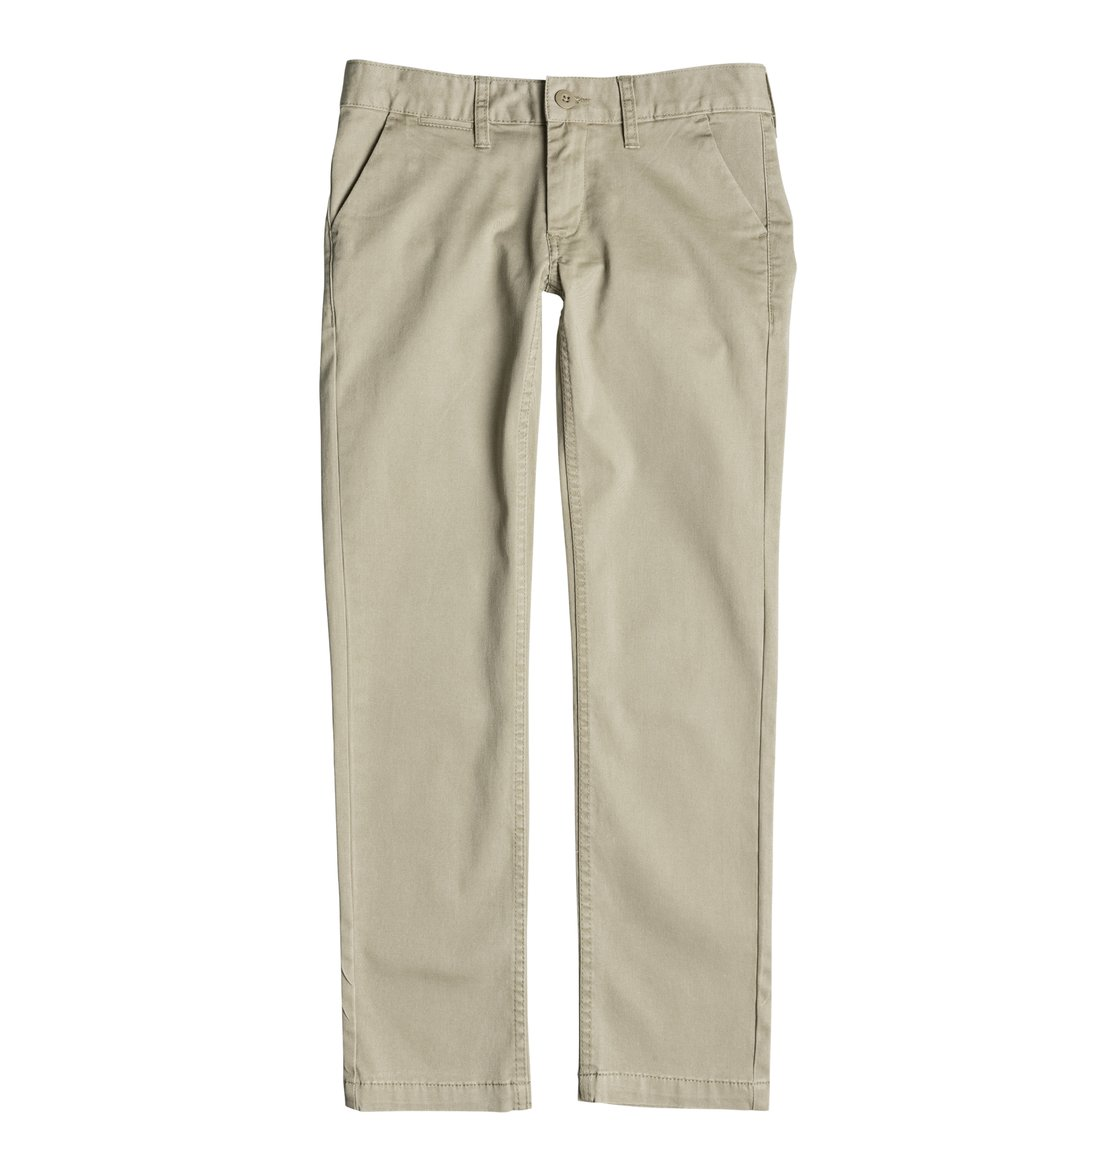 Worker Slim Fit Chino - Dcshoes - Dcshoes������� ����� Worker Slim Fit Chino �� DC Shoes. <br>��������������: ������ ���������� �����, ����� ����, ��������� �������� �������, ������� �� ������, ����� � ��������� DC ��� ������ ��������, ��������� ������ ��� ������ �������, ������������ ������� ������� �����. <br>������: 98% ������, 2% �������.<br>